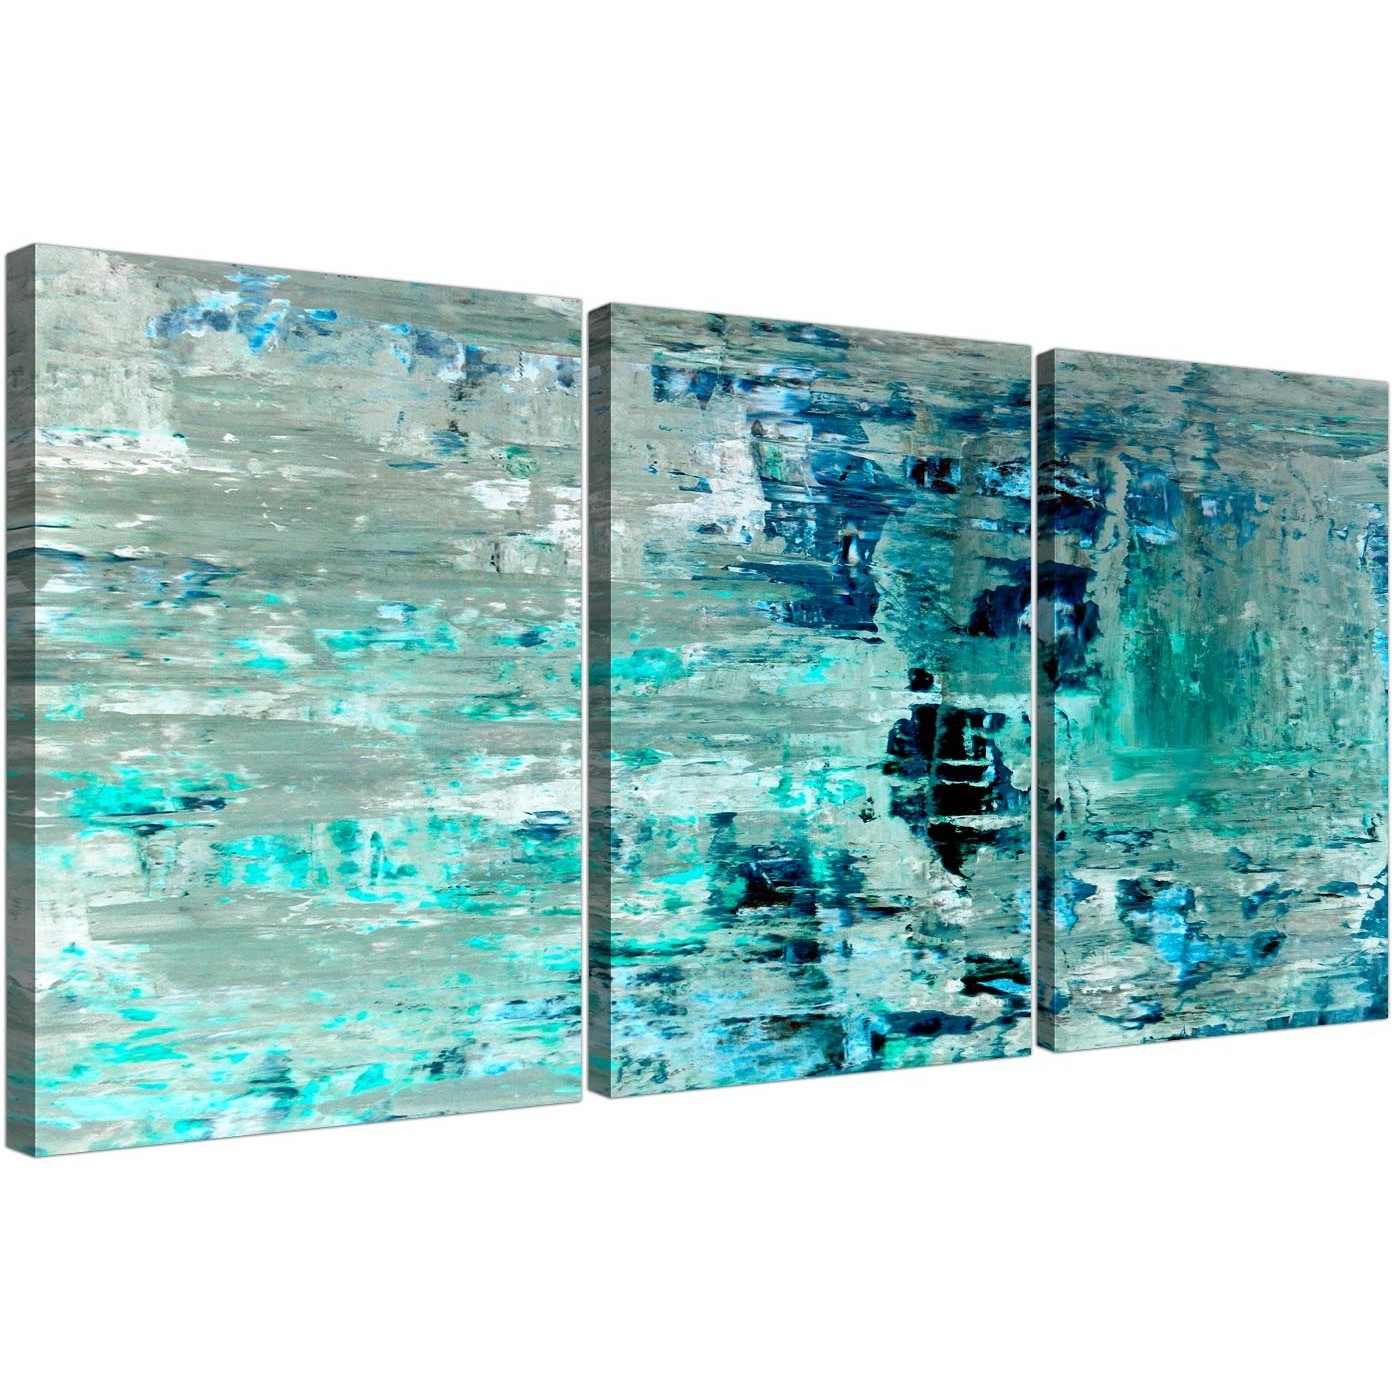 Oversized Turquoise Teal Abstract Painting Wall Art Print Canvas with regard to Oversized Teal Canvas Wall Art (Image 18 of 20)